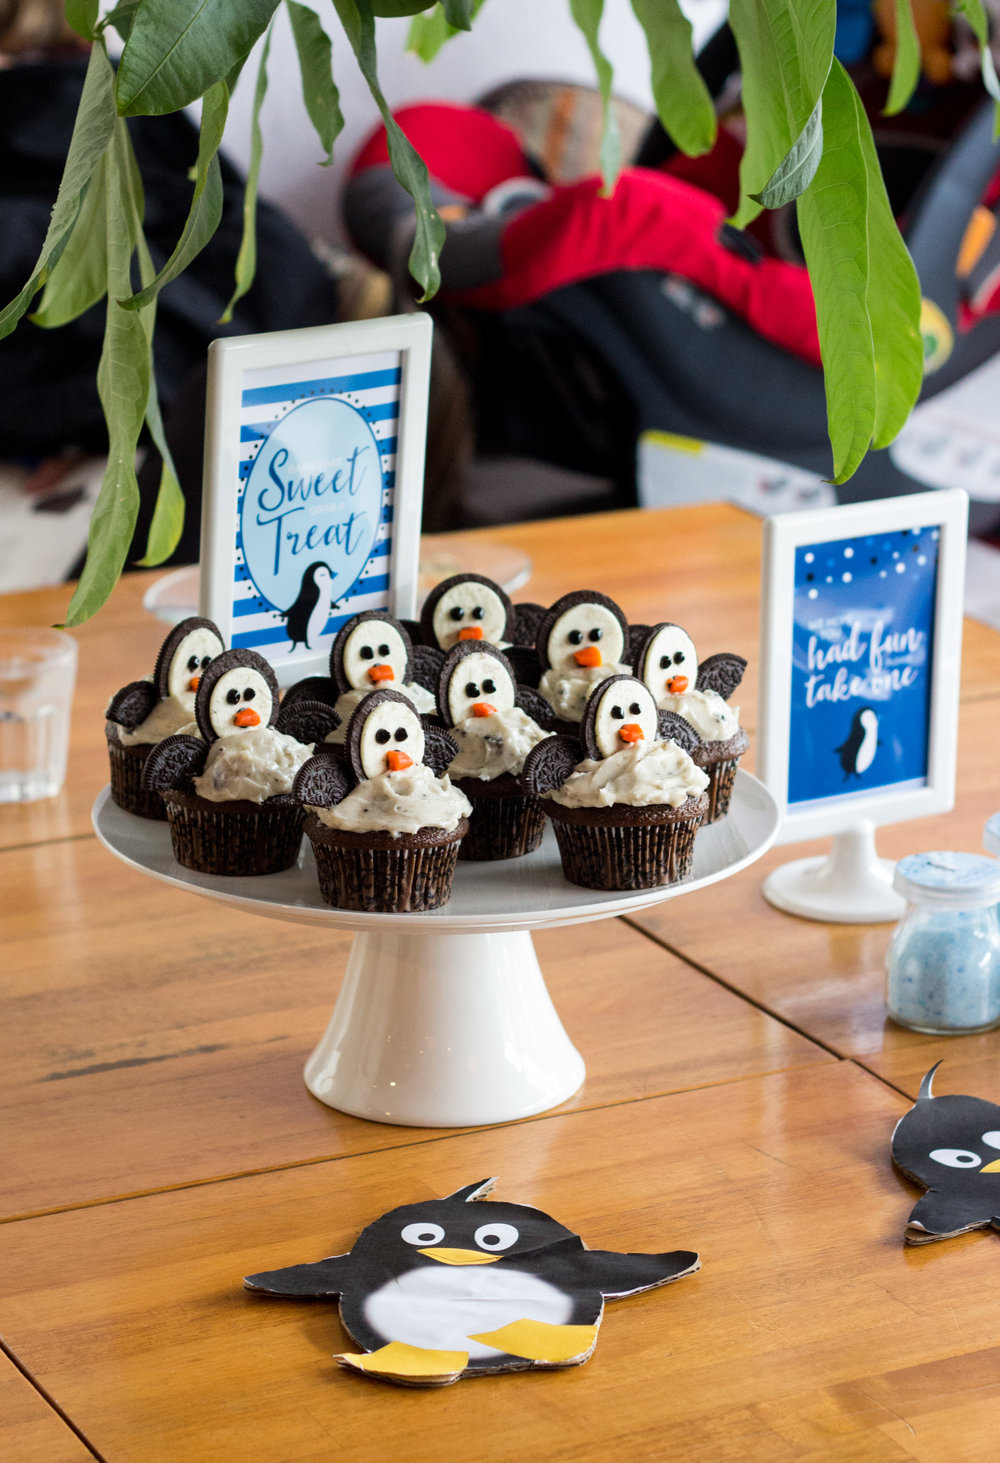 Penguin party decor by shopmkkm.com